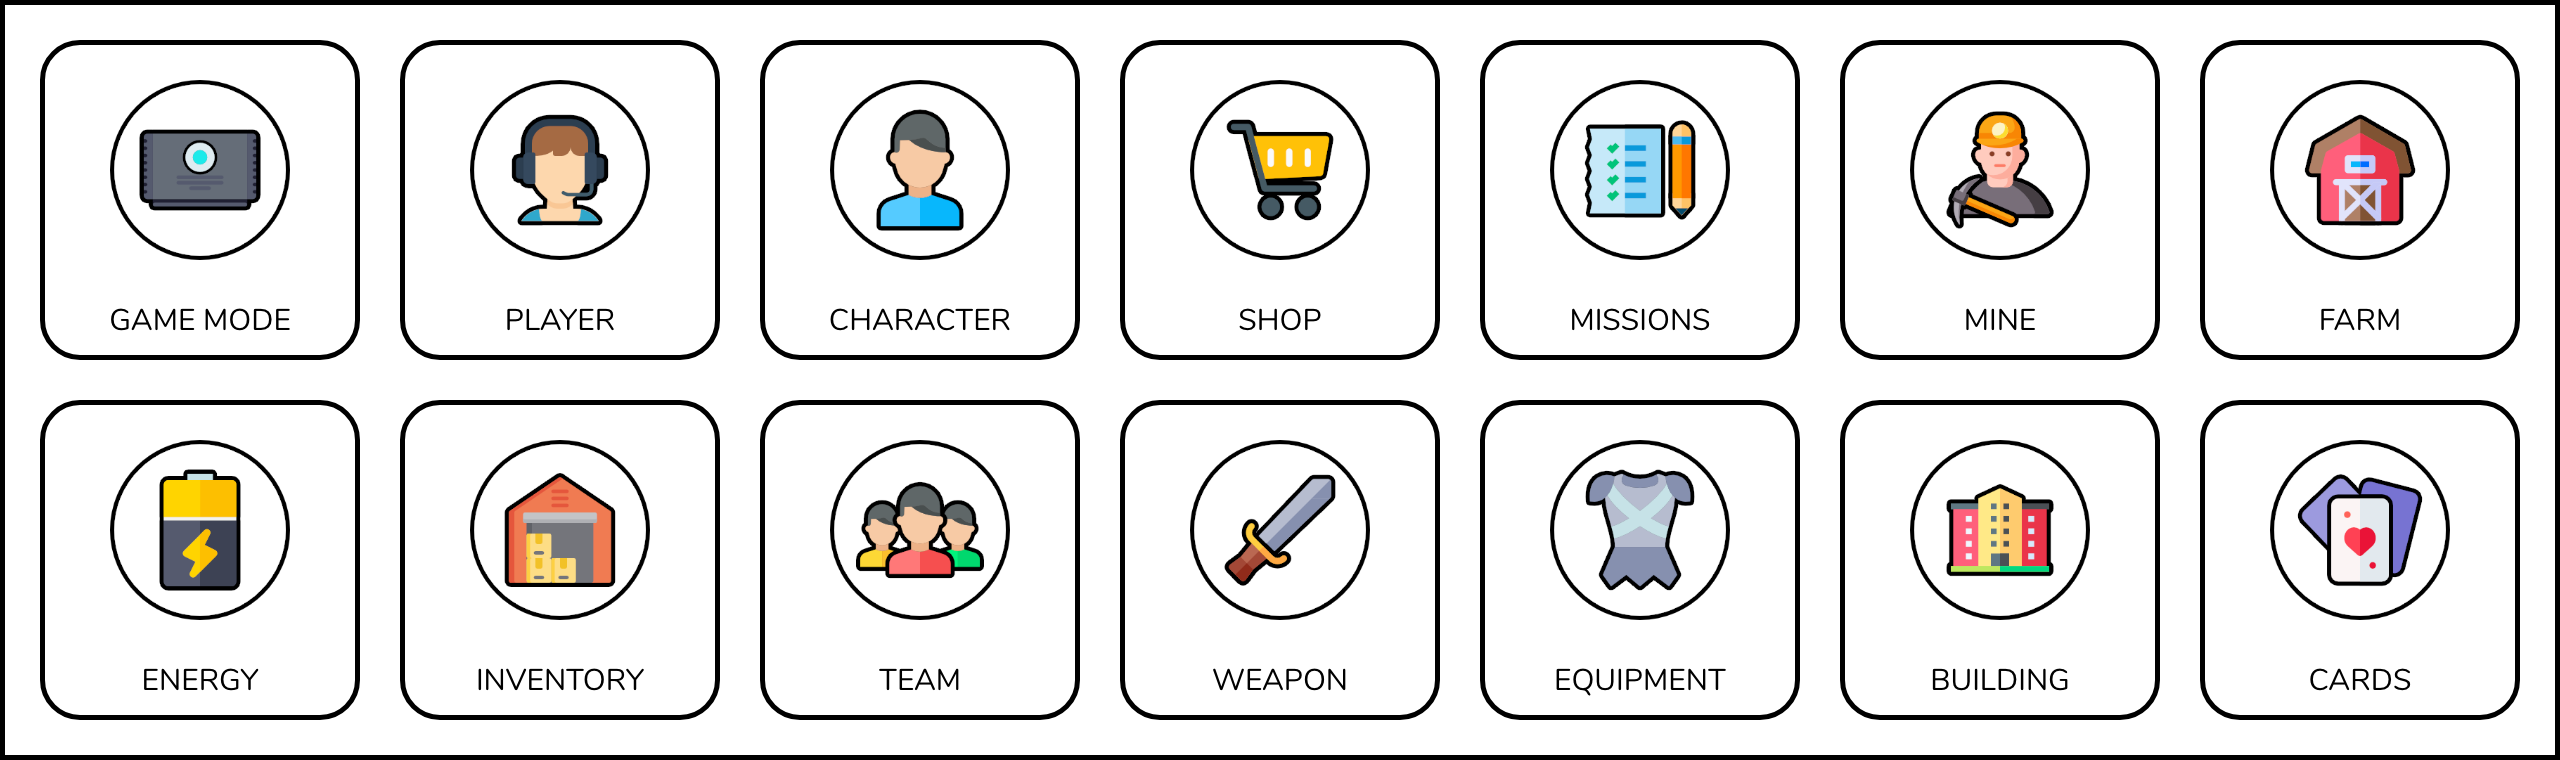 Features & Main Elements.png